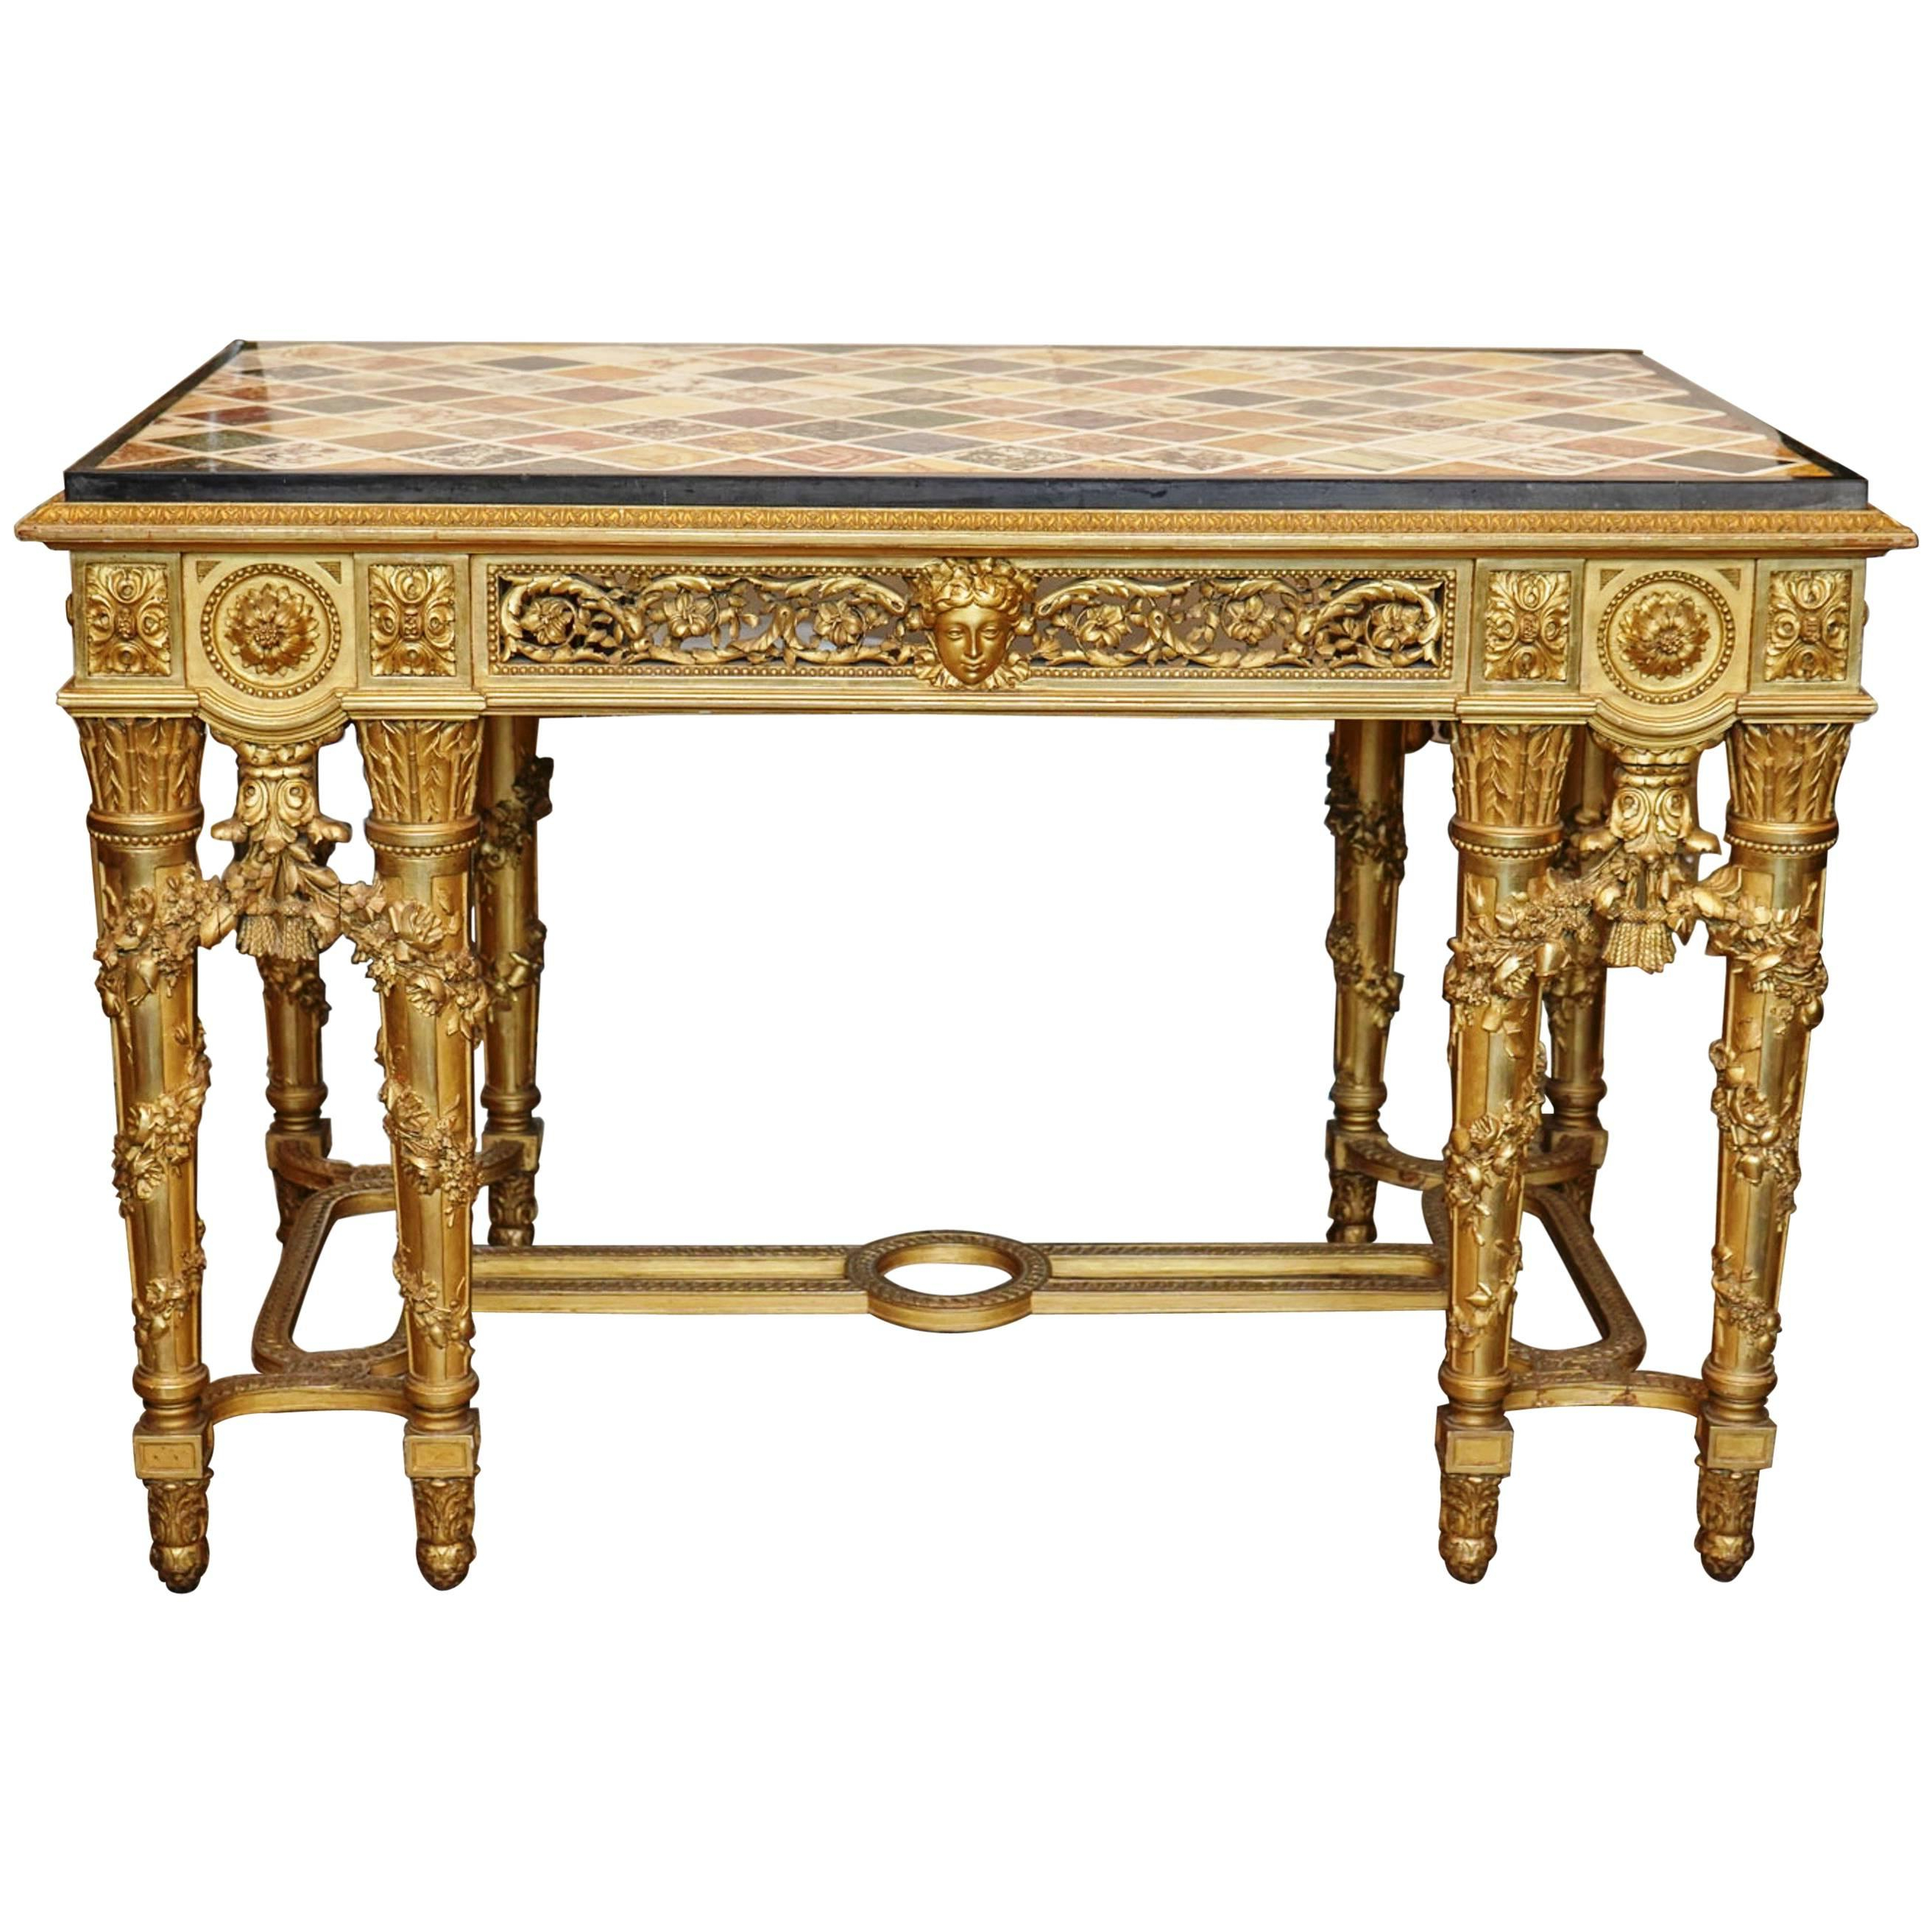 Extraordinary Rectangular Giltwood Centre Table 19Th Century Marble Pertaining To Intarsia Console Tables (Gallery 15 of 20)